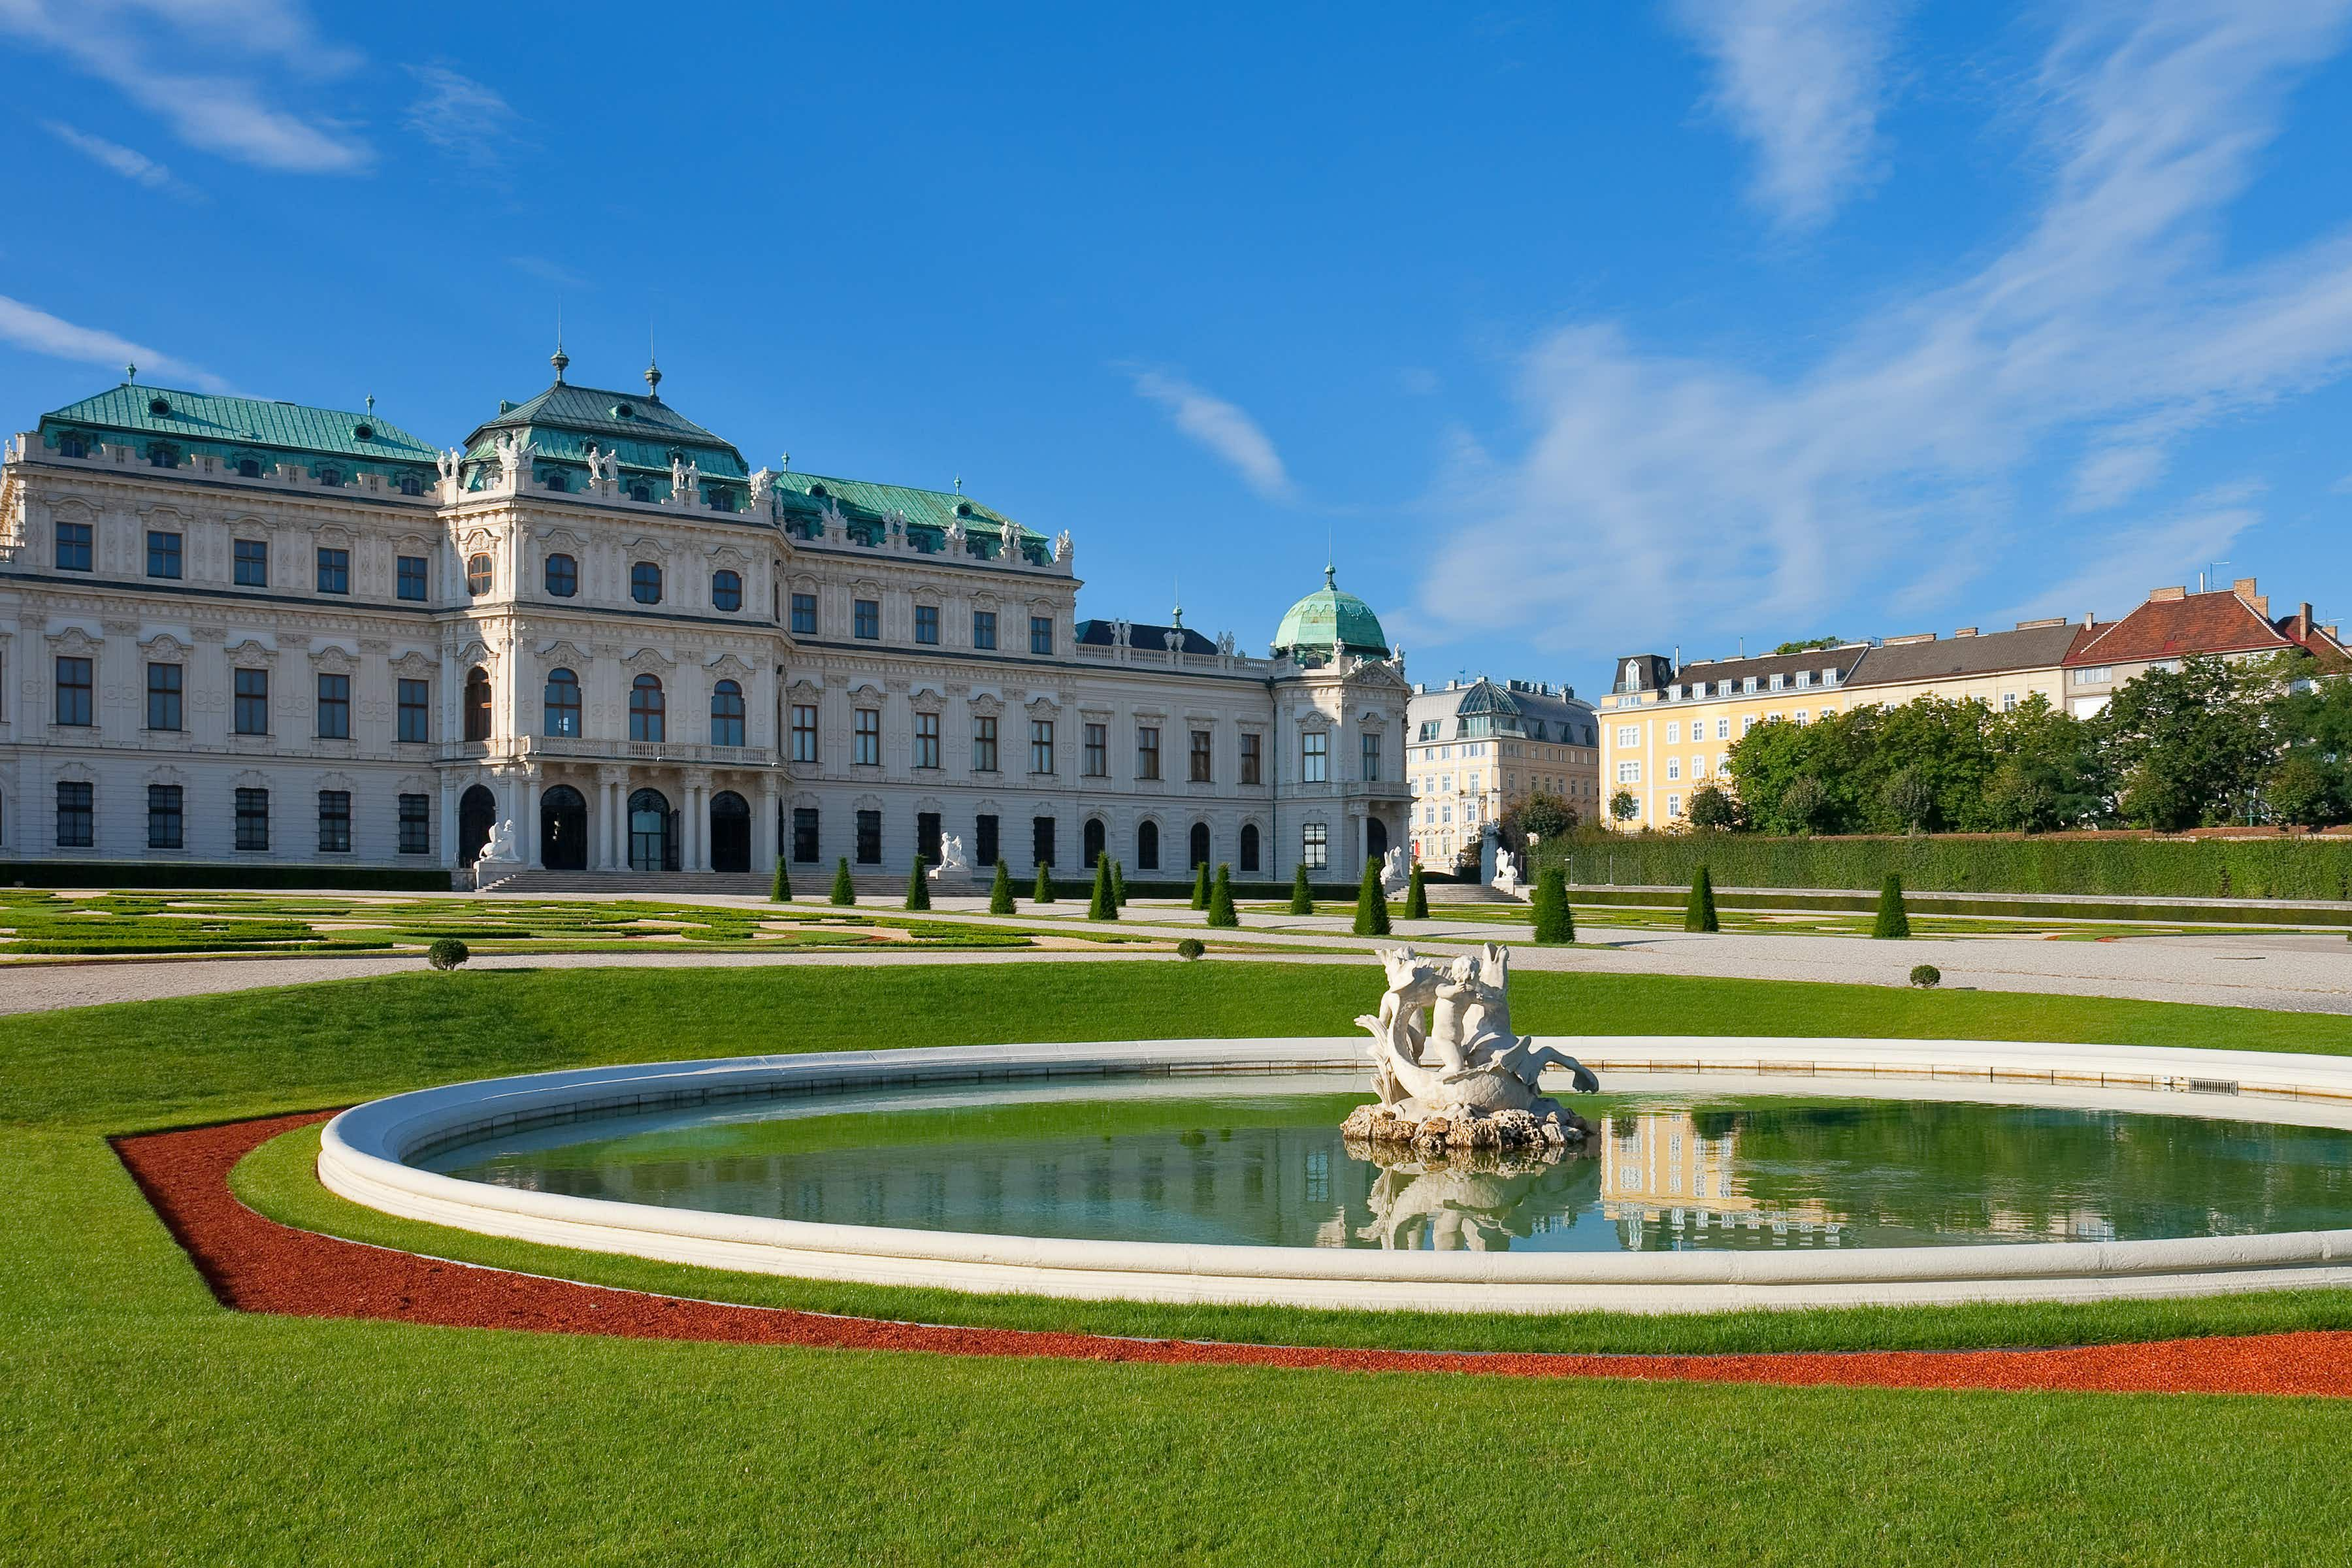 Explore the high life during a visit to the Belvedere Palace and its beautiful gardens © Scanrail / Getty Images